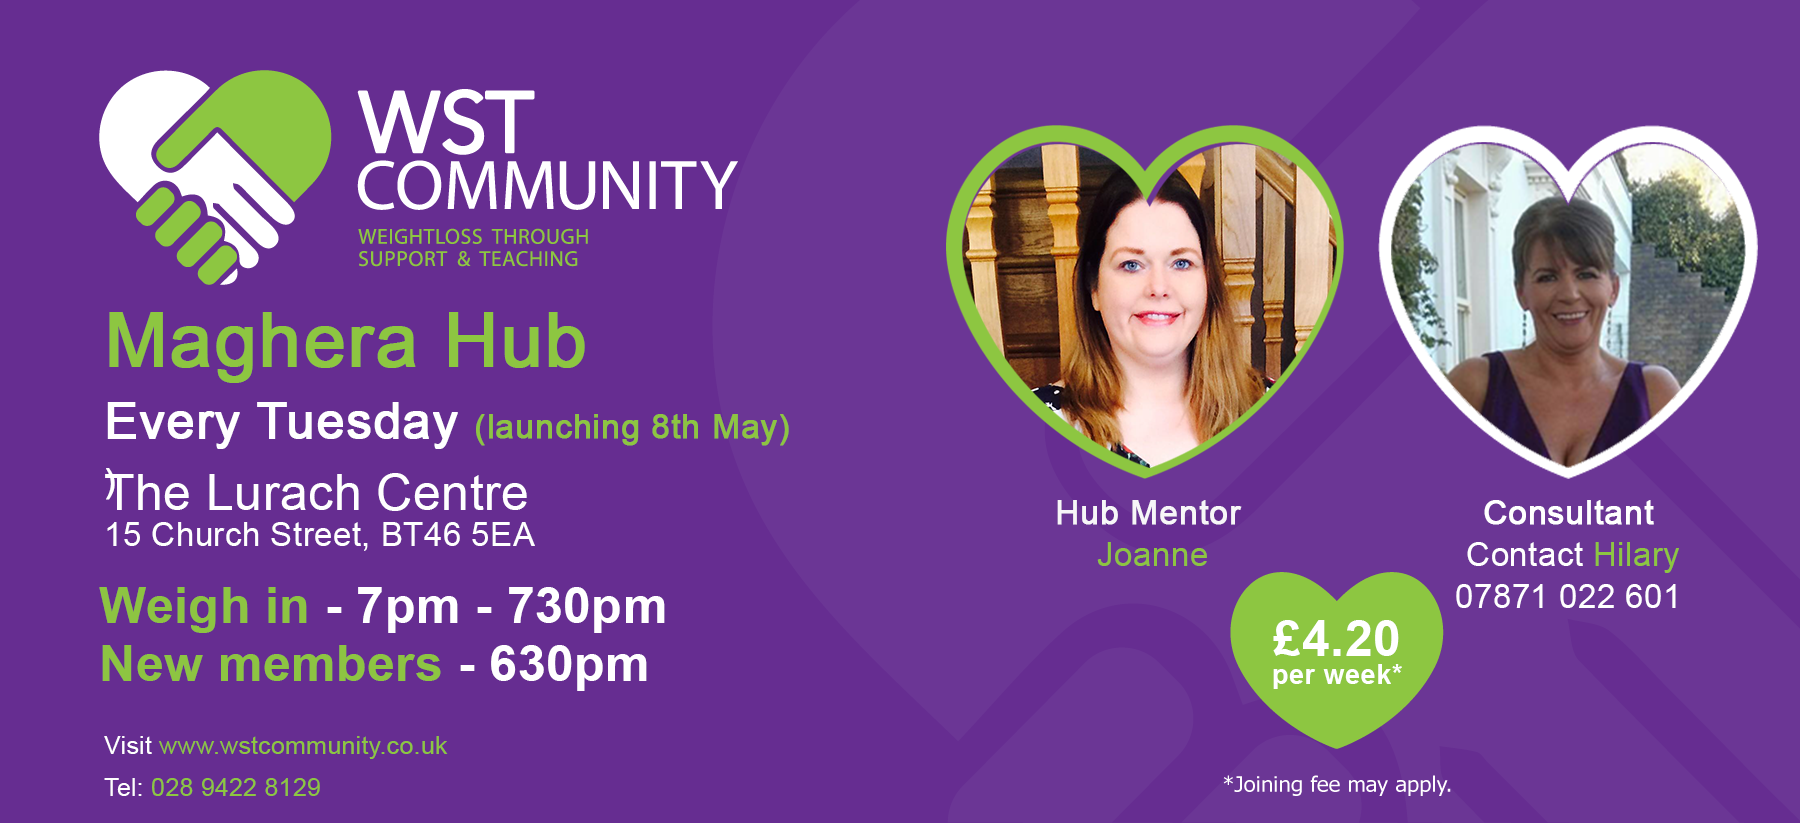 Launch of WST Community Maghera Hub